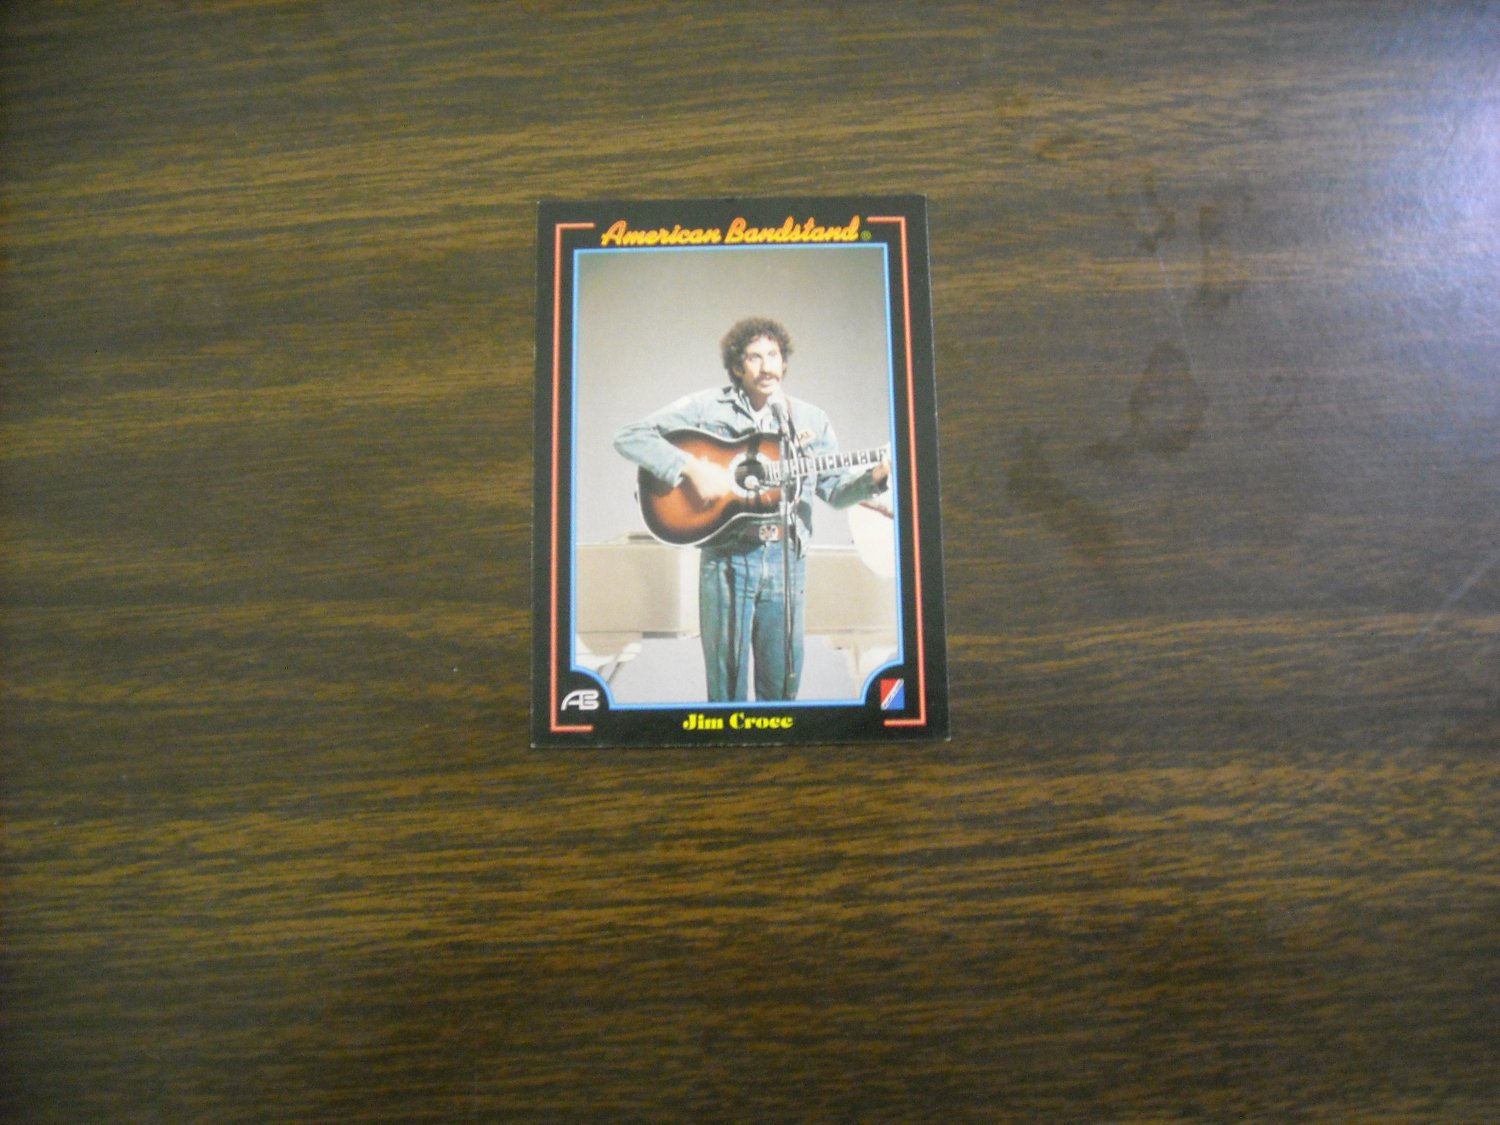 Jim Croce American Bandstand Card No. 11 - 1993 Collect A Card